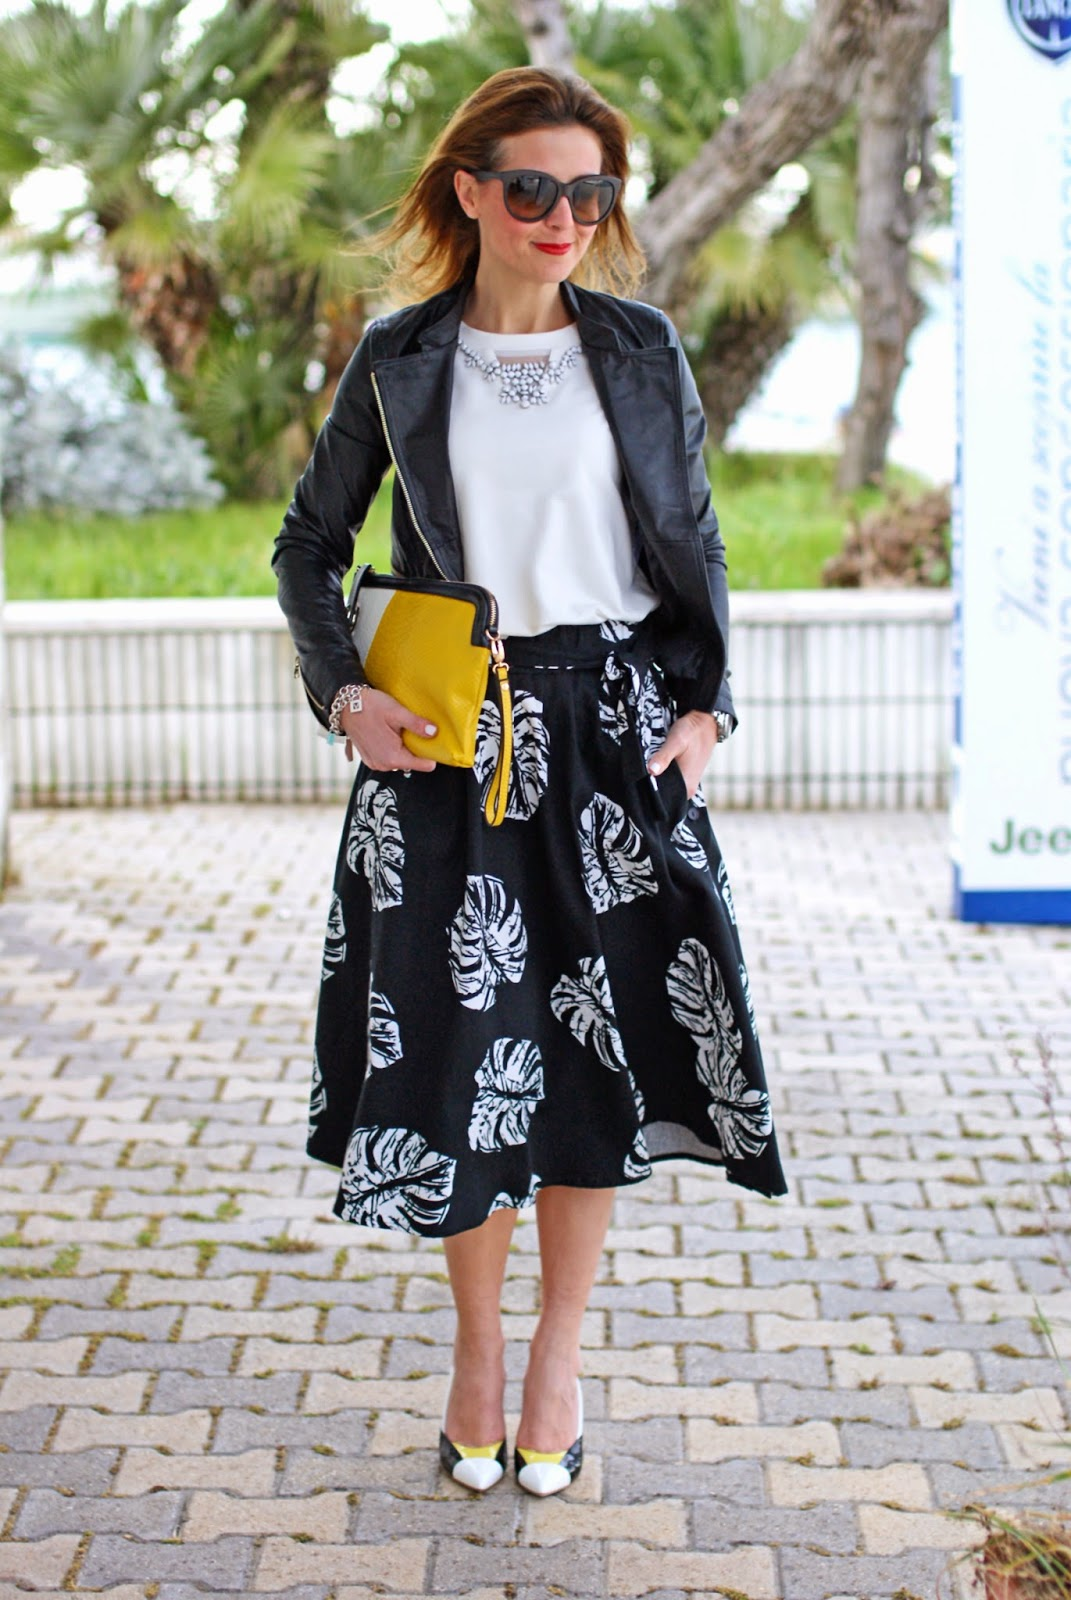 Giorgia & Johns felpa pietre e tulle, leather peplum jacket, palm leaf print skirt, Loriblu heels, Fashion and Cookies, fashion blogger